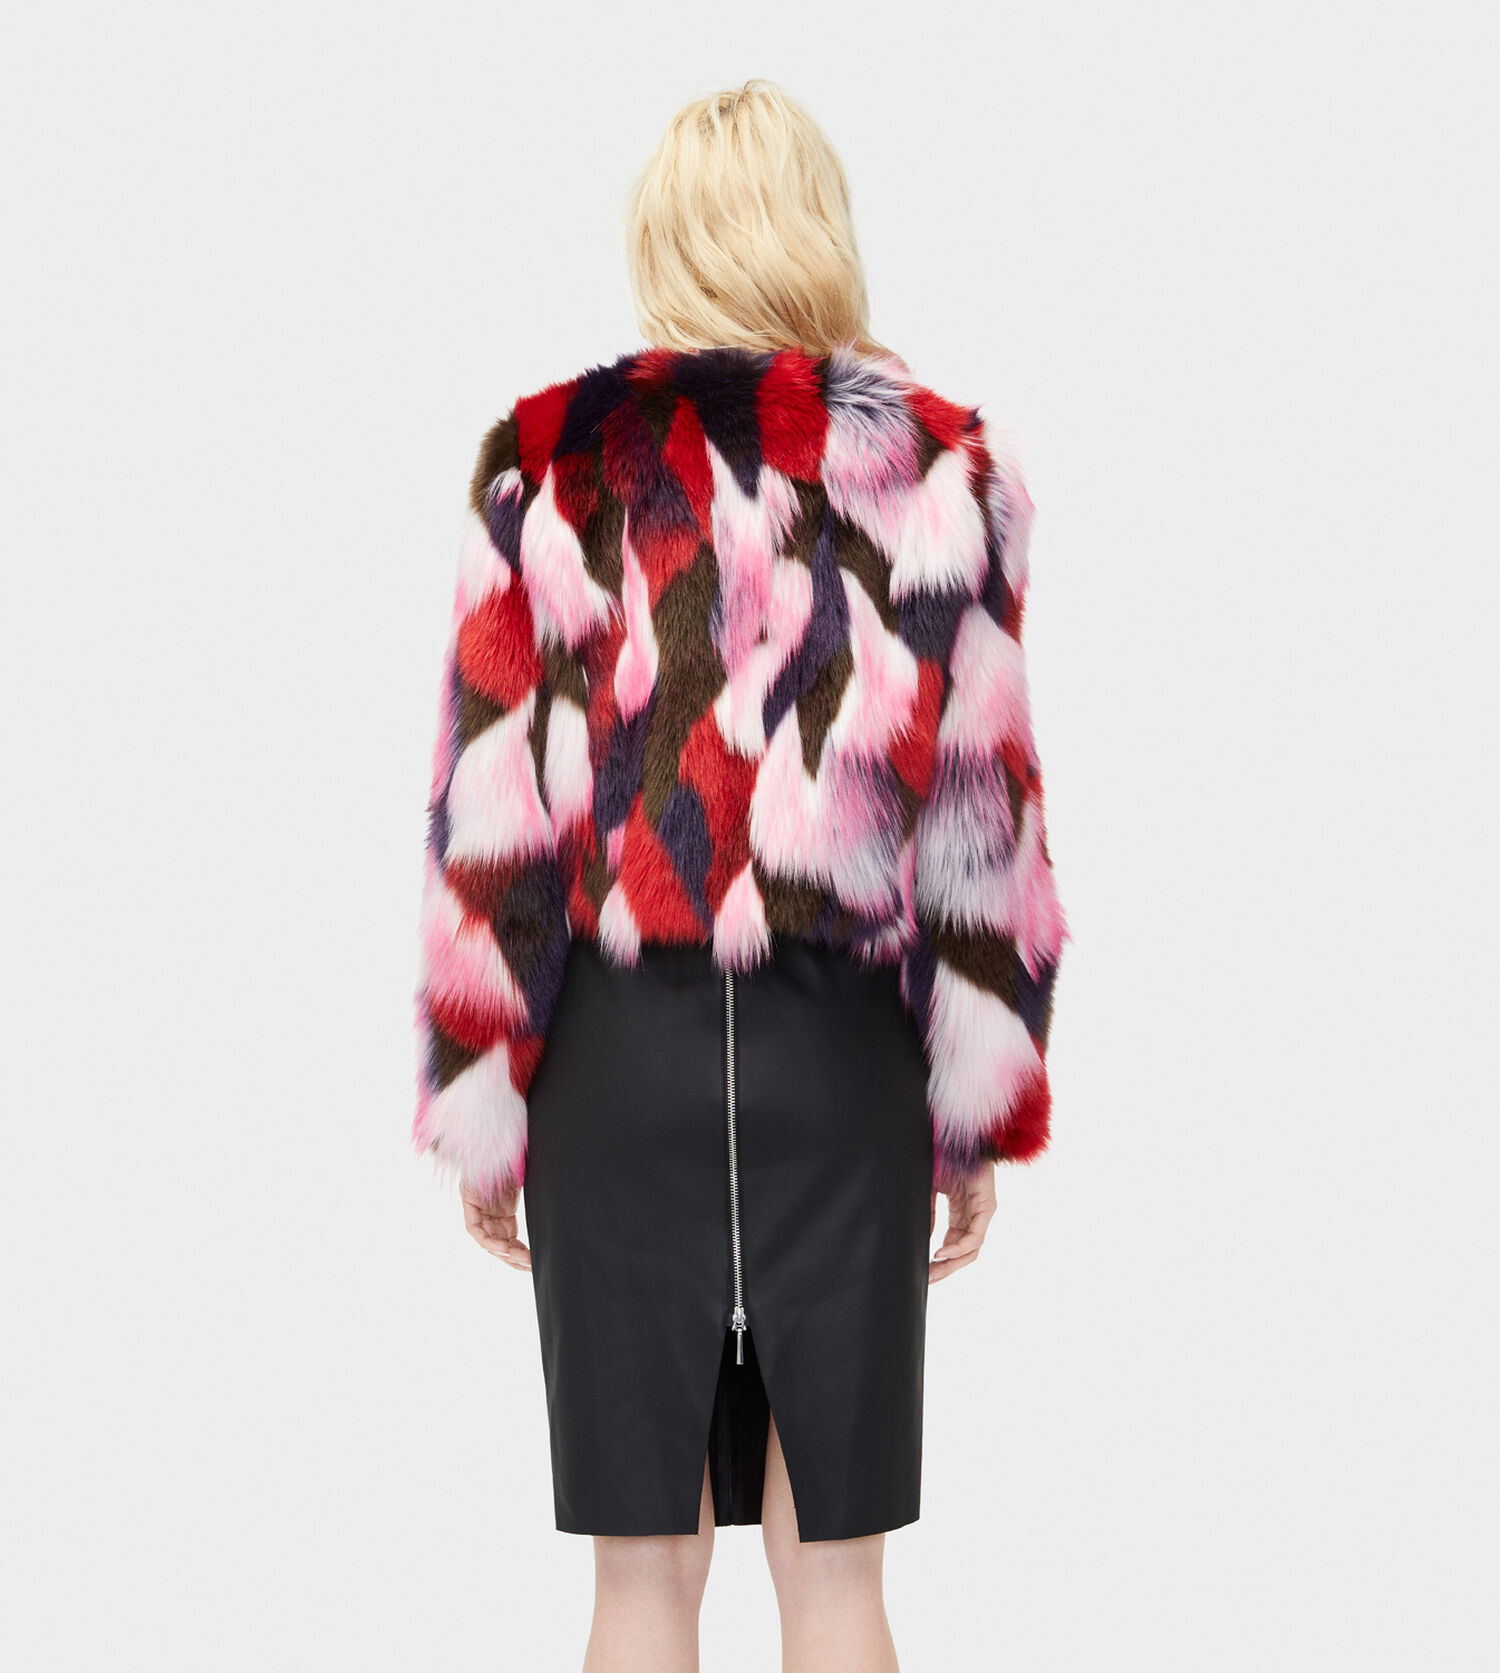 f1aefe73068e Zoom Lorrena Patchwork Faux Fur - Image 2 of 3